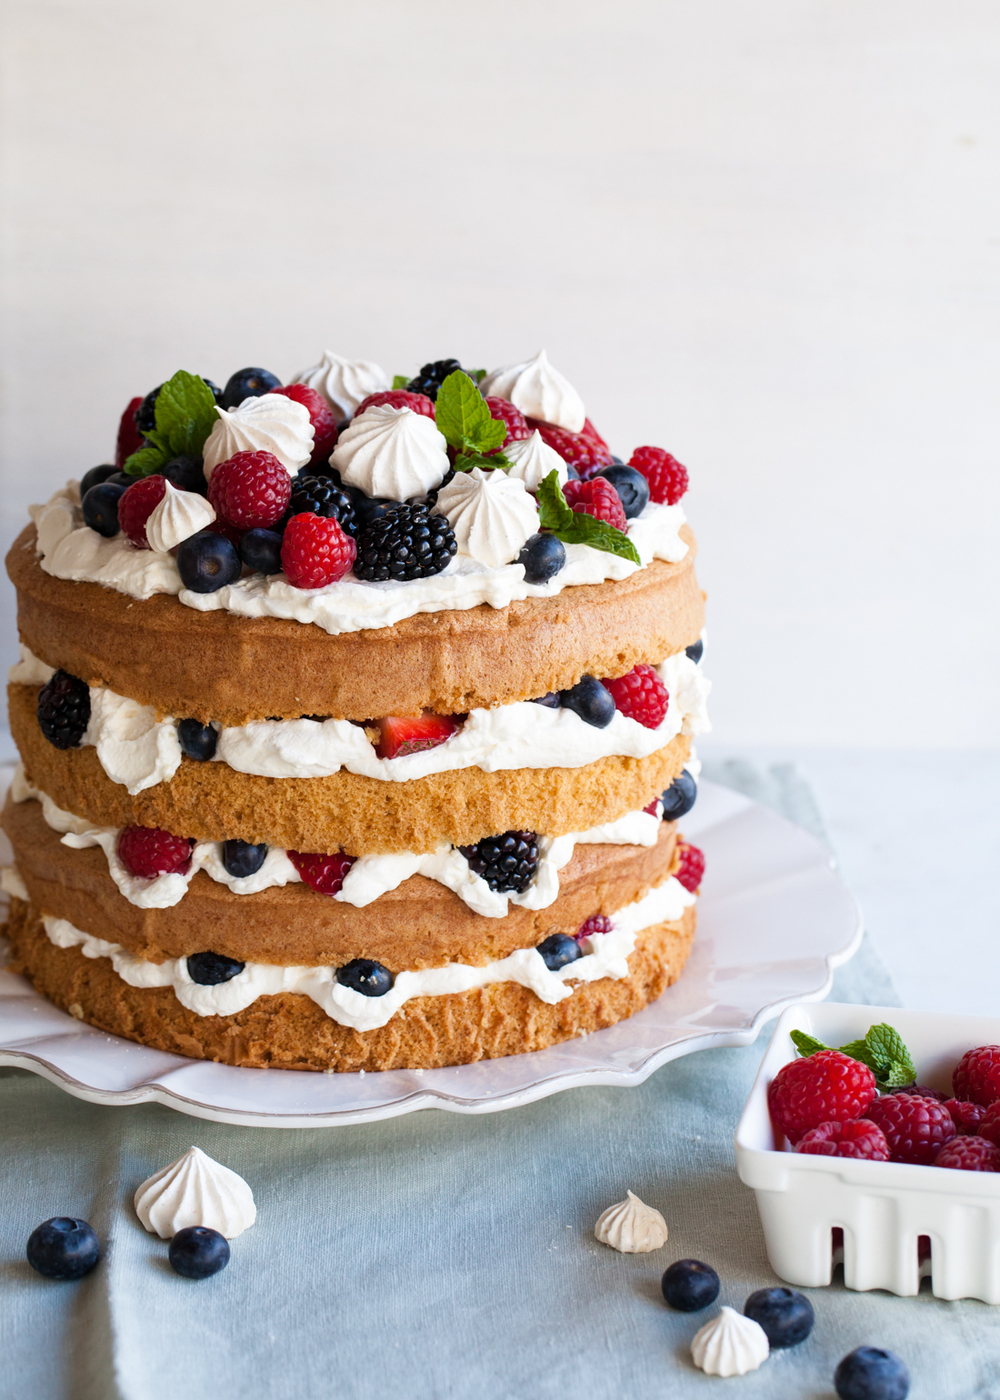 Eton Mess Cake with layers of sponge cake, sweetened whipped cream, crispy meringue, and fresh berries.